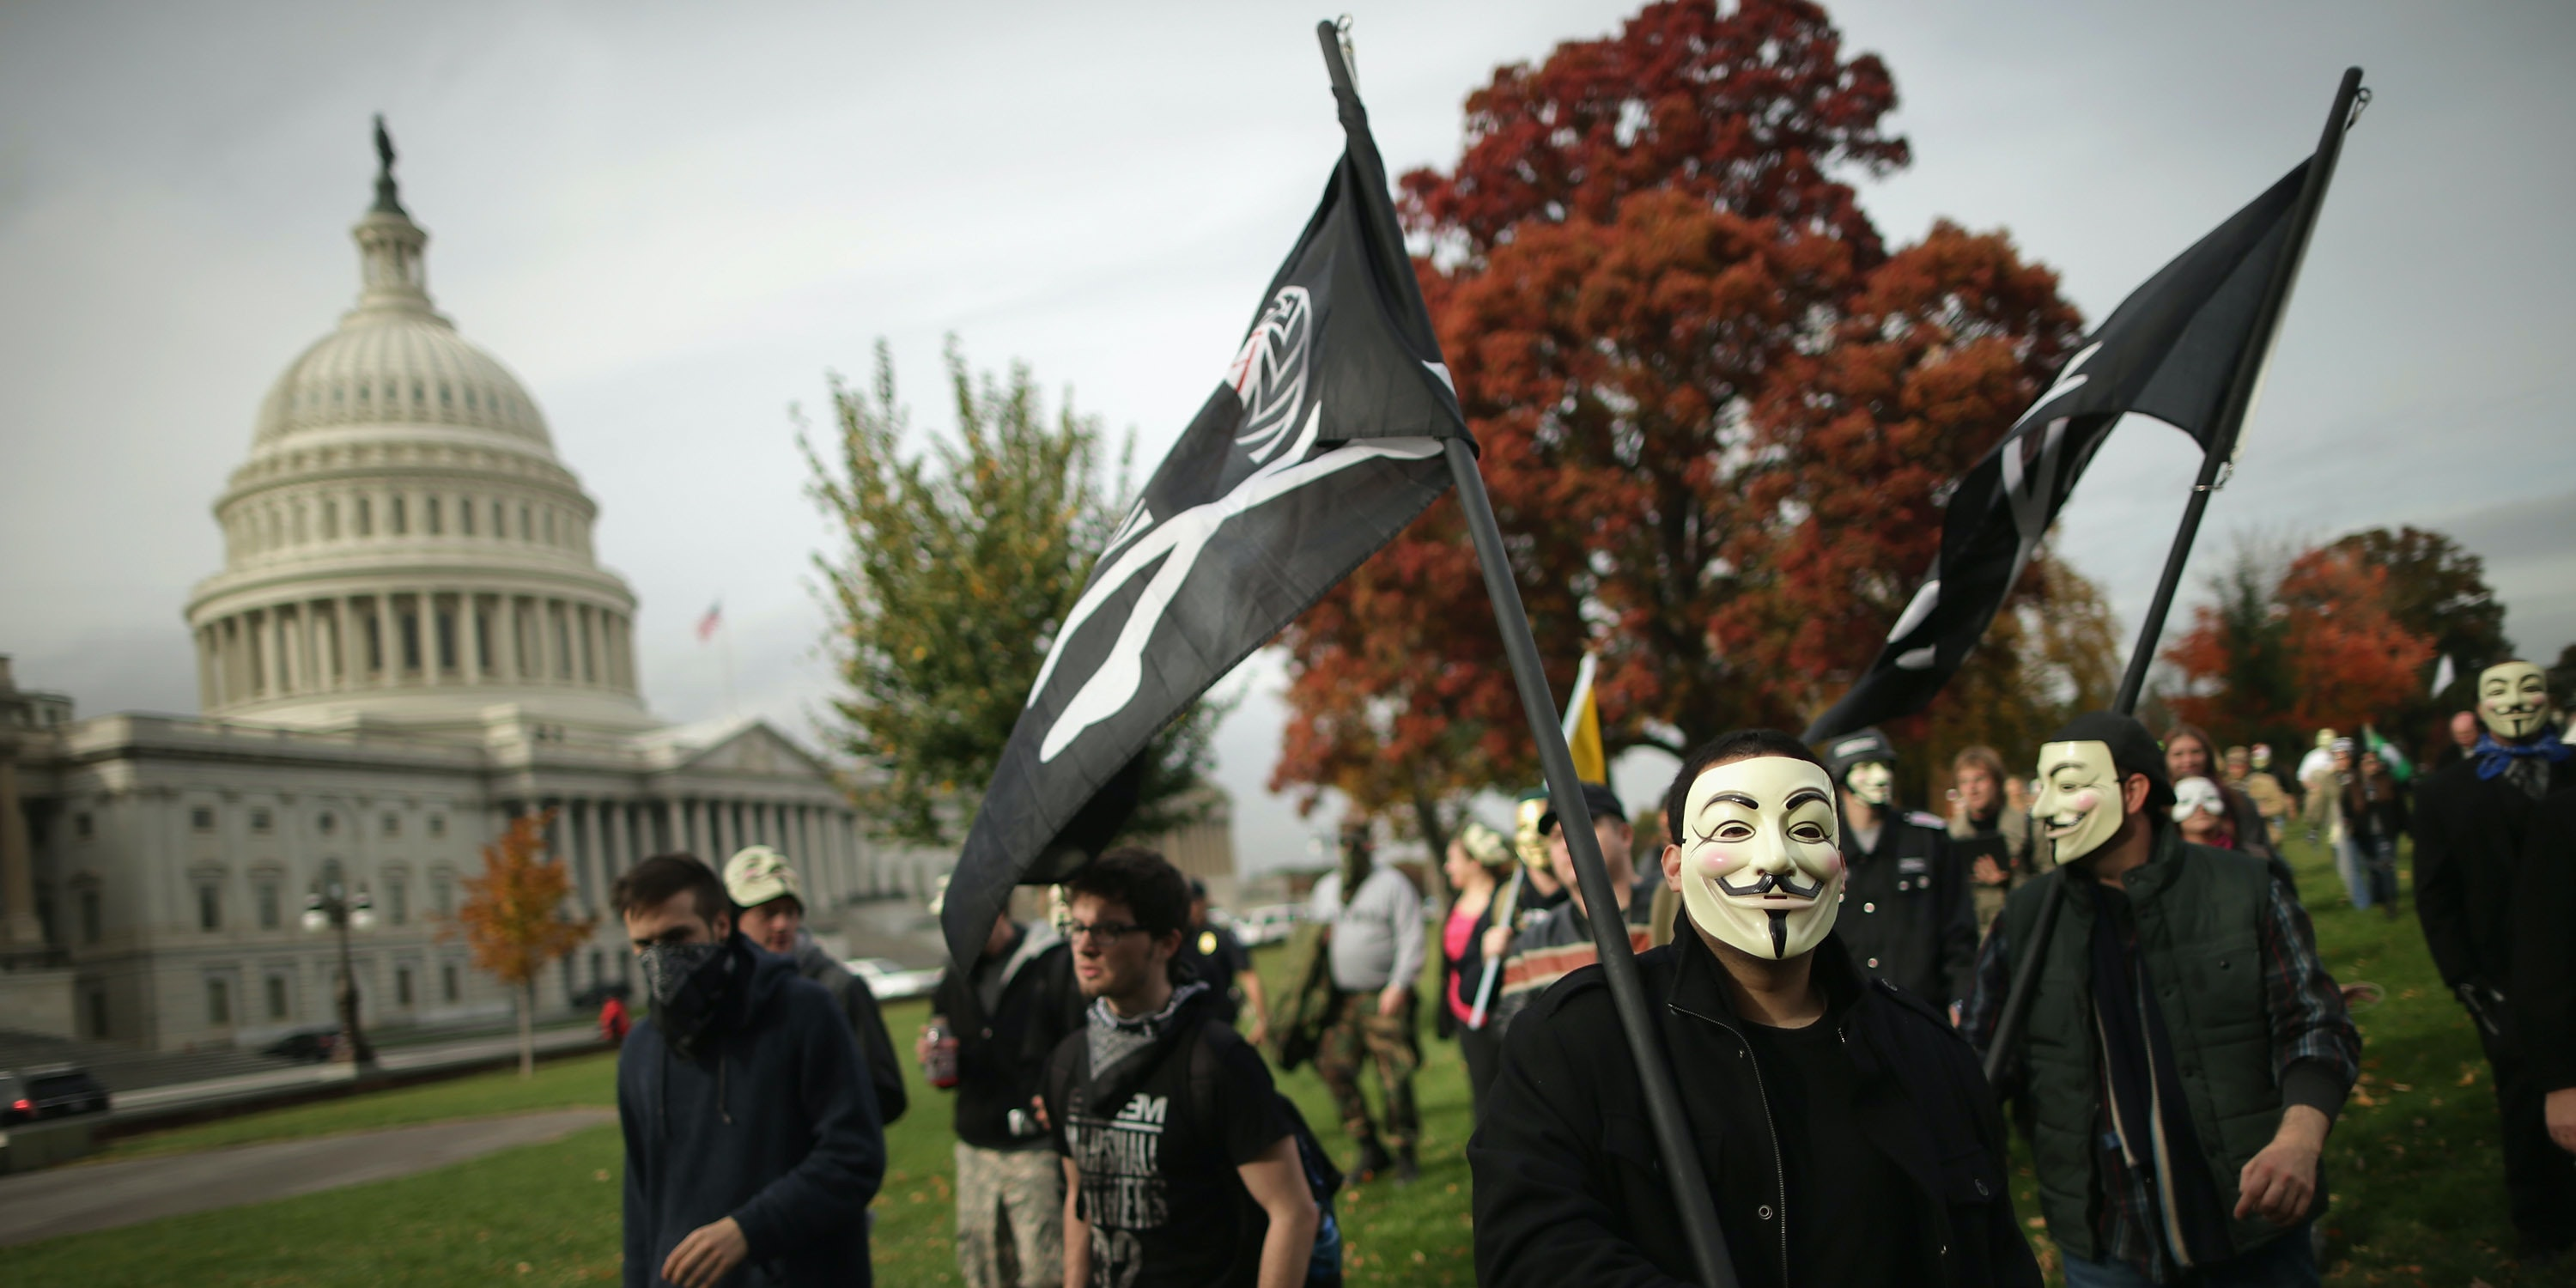 Million Mask Marches Happened Worldwide, But Violence Stayed in London